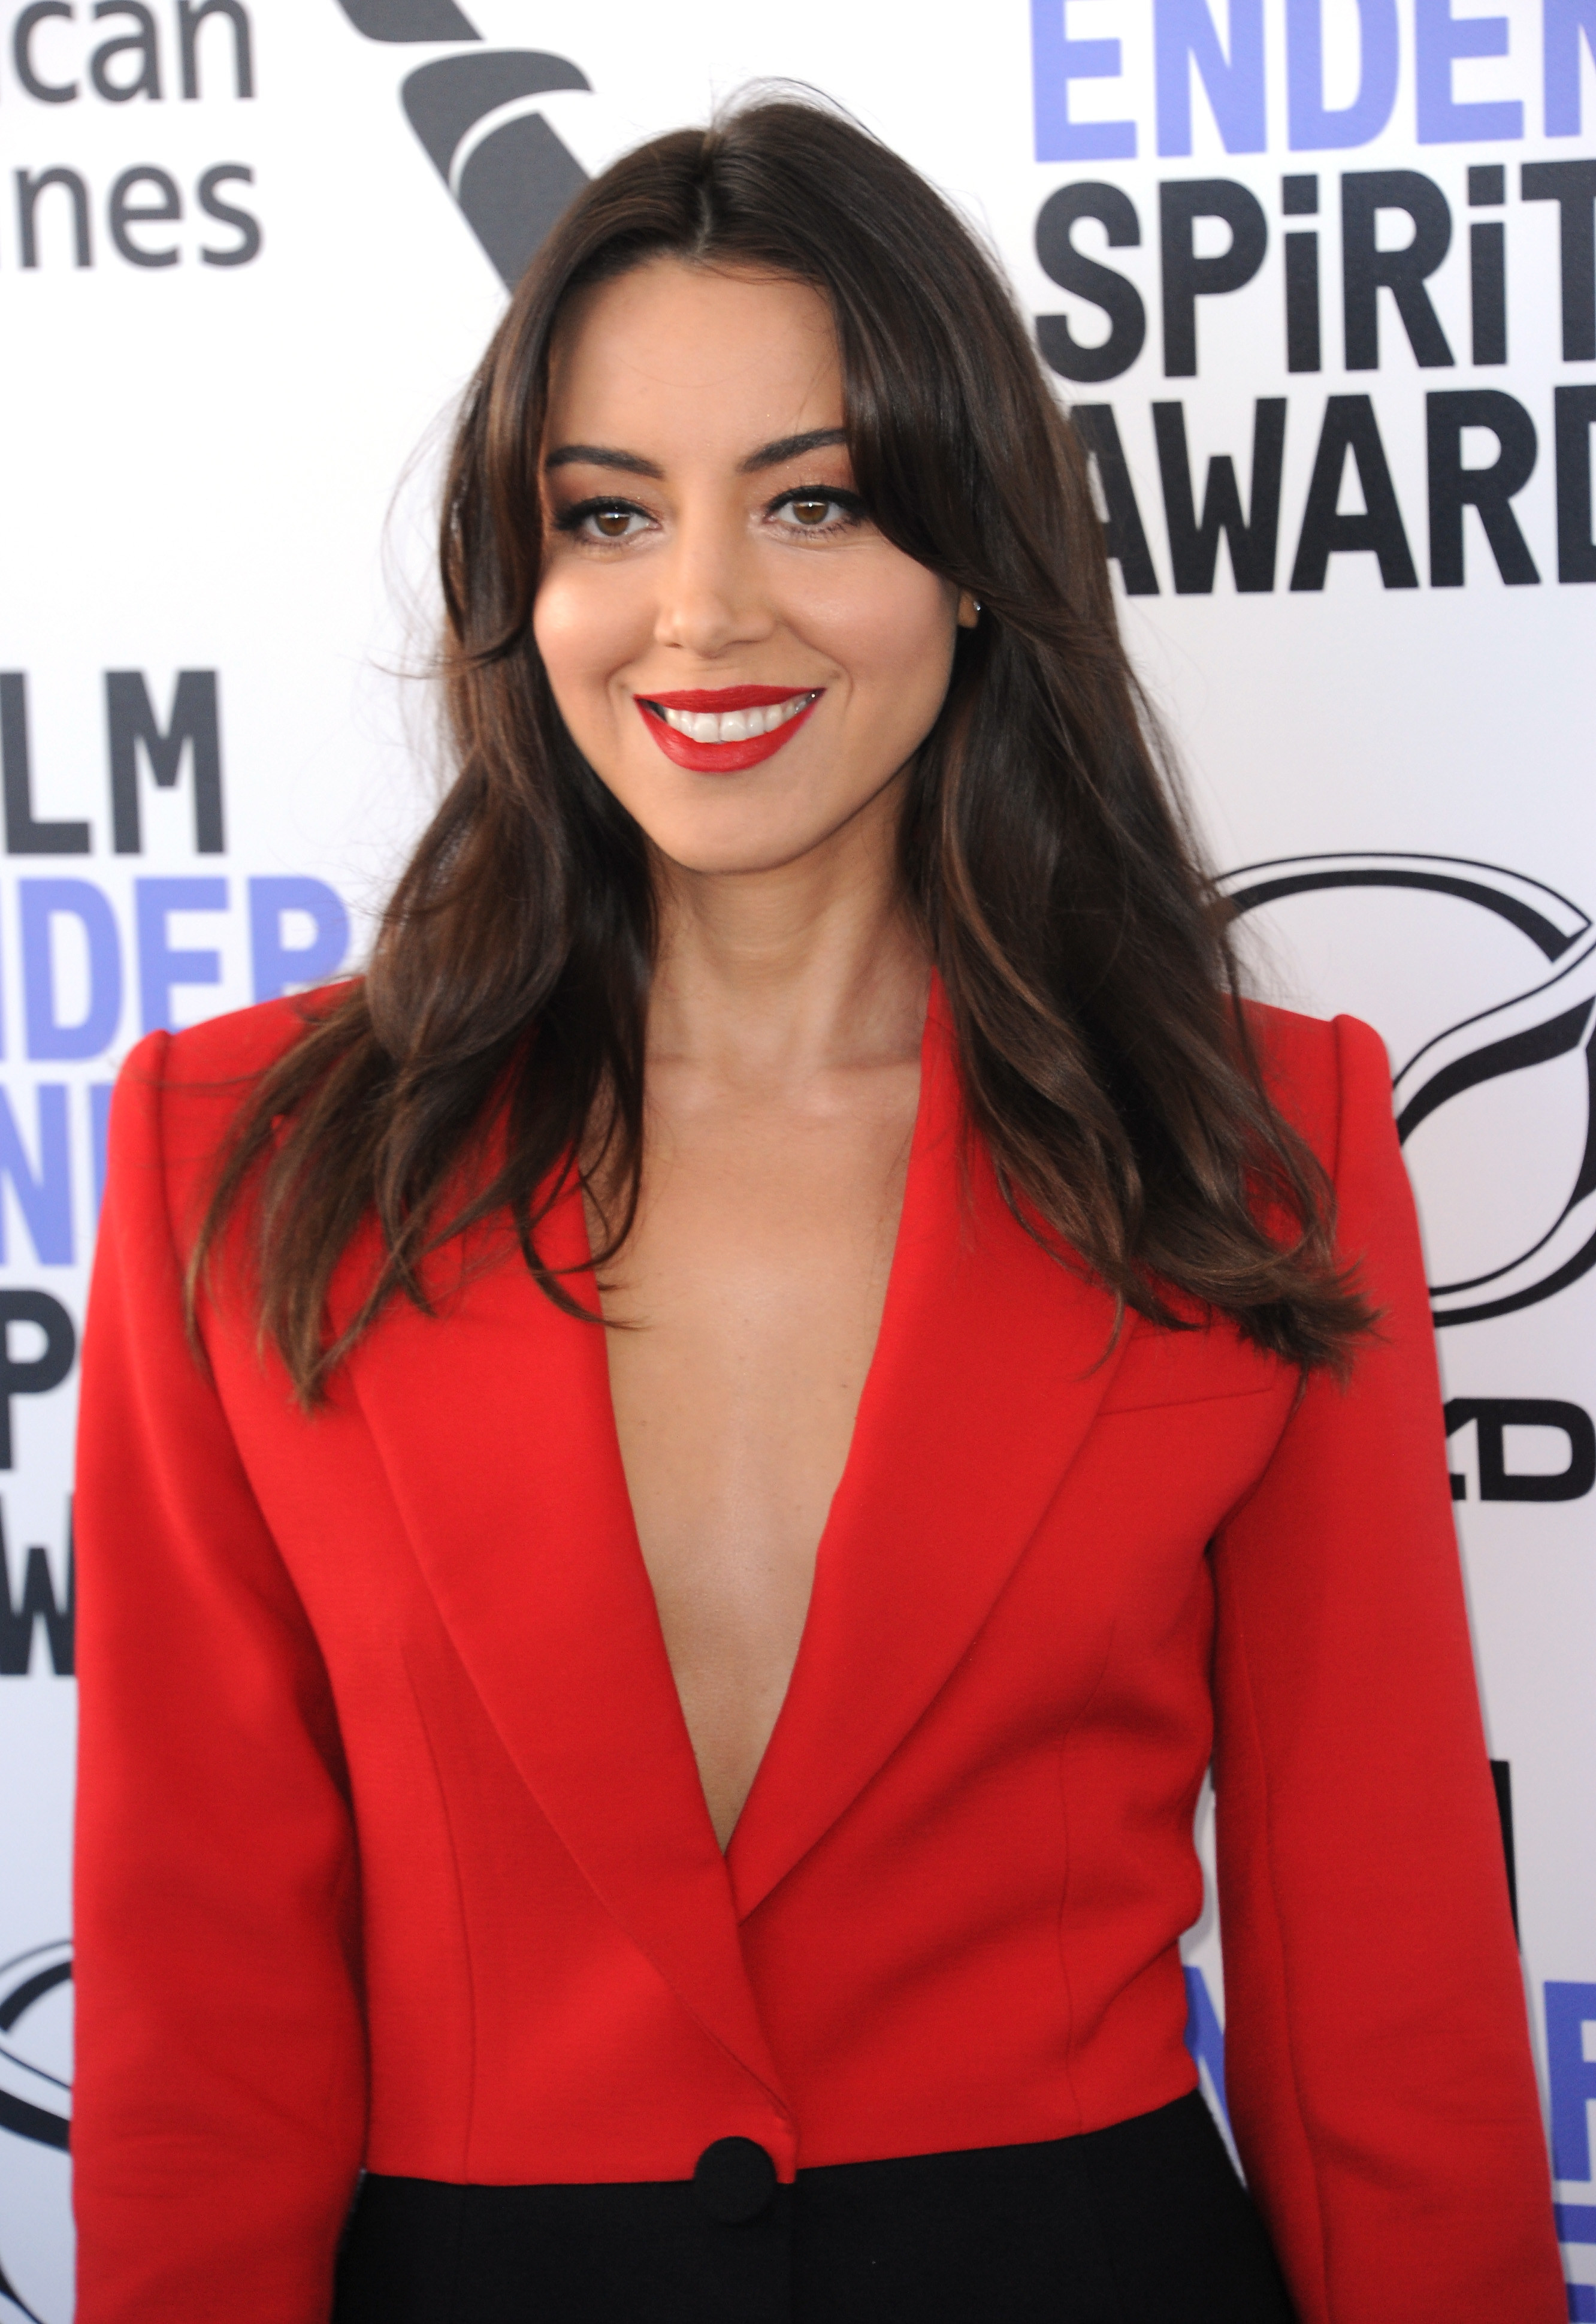 Aubrey Plaza wearing a red blazer with matching red lipstick